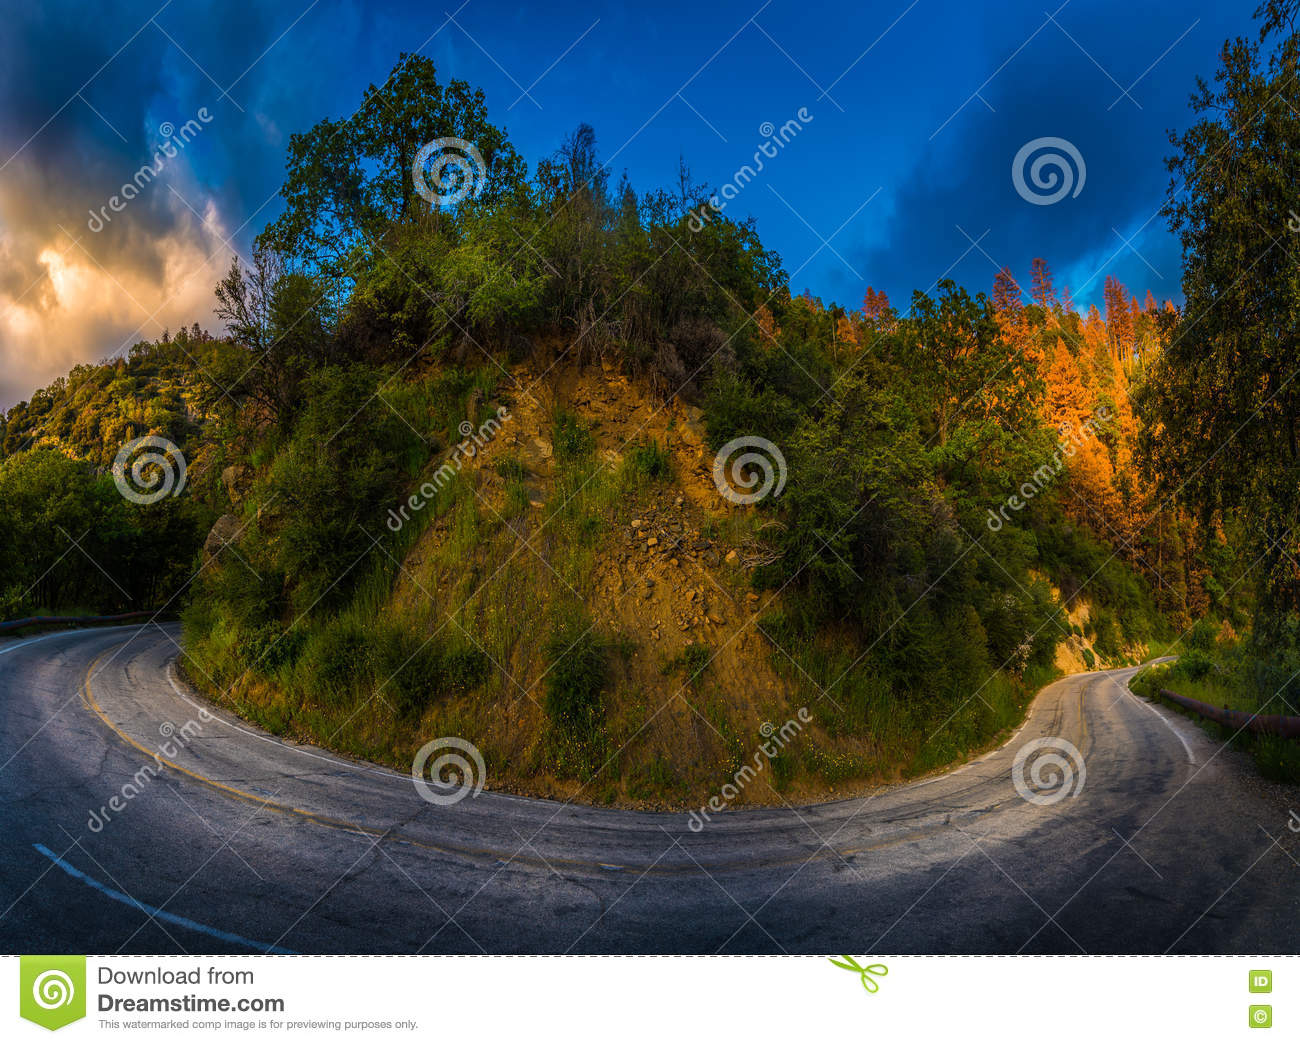 Generals Highway California Stock Image - Image of colorful